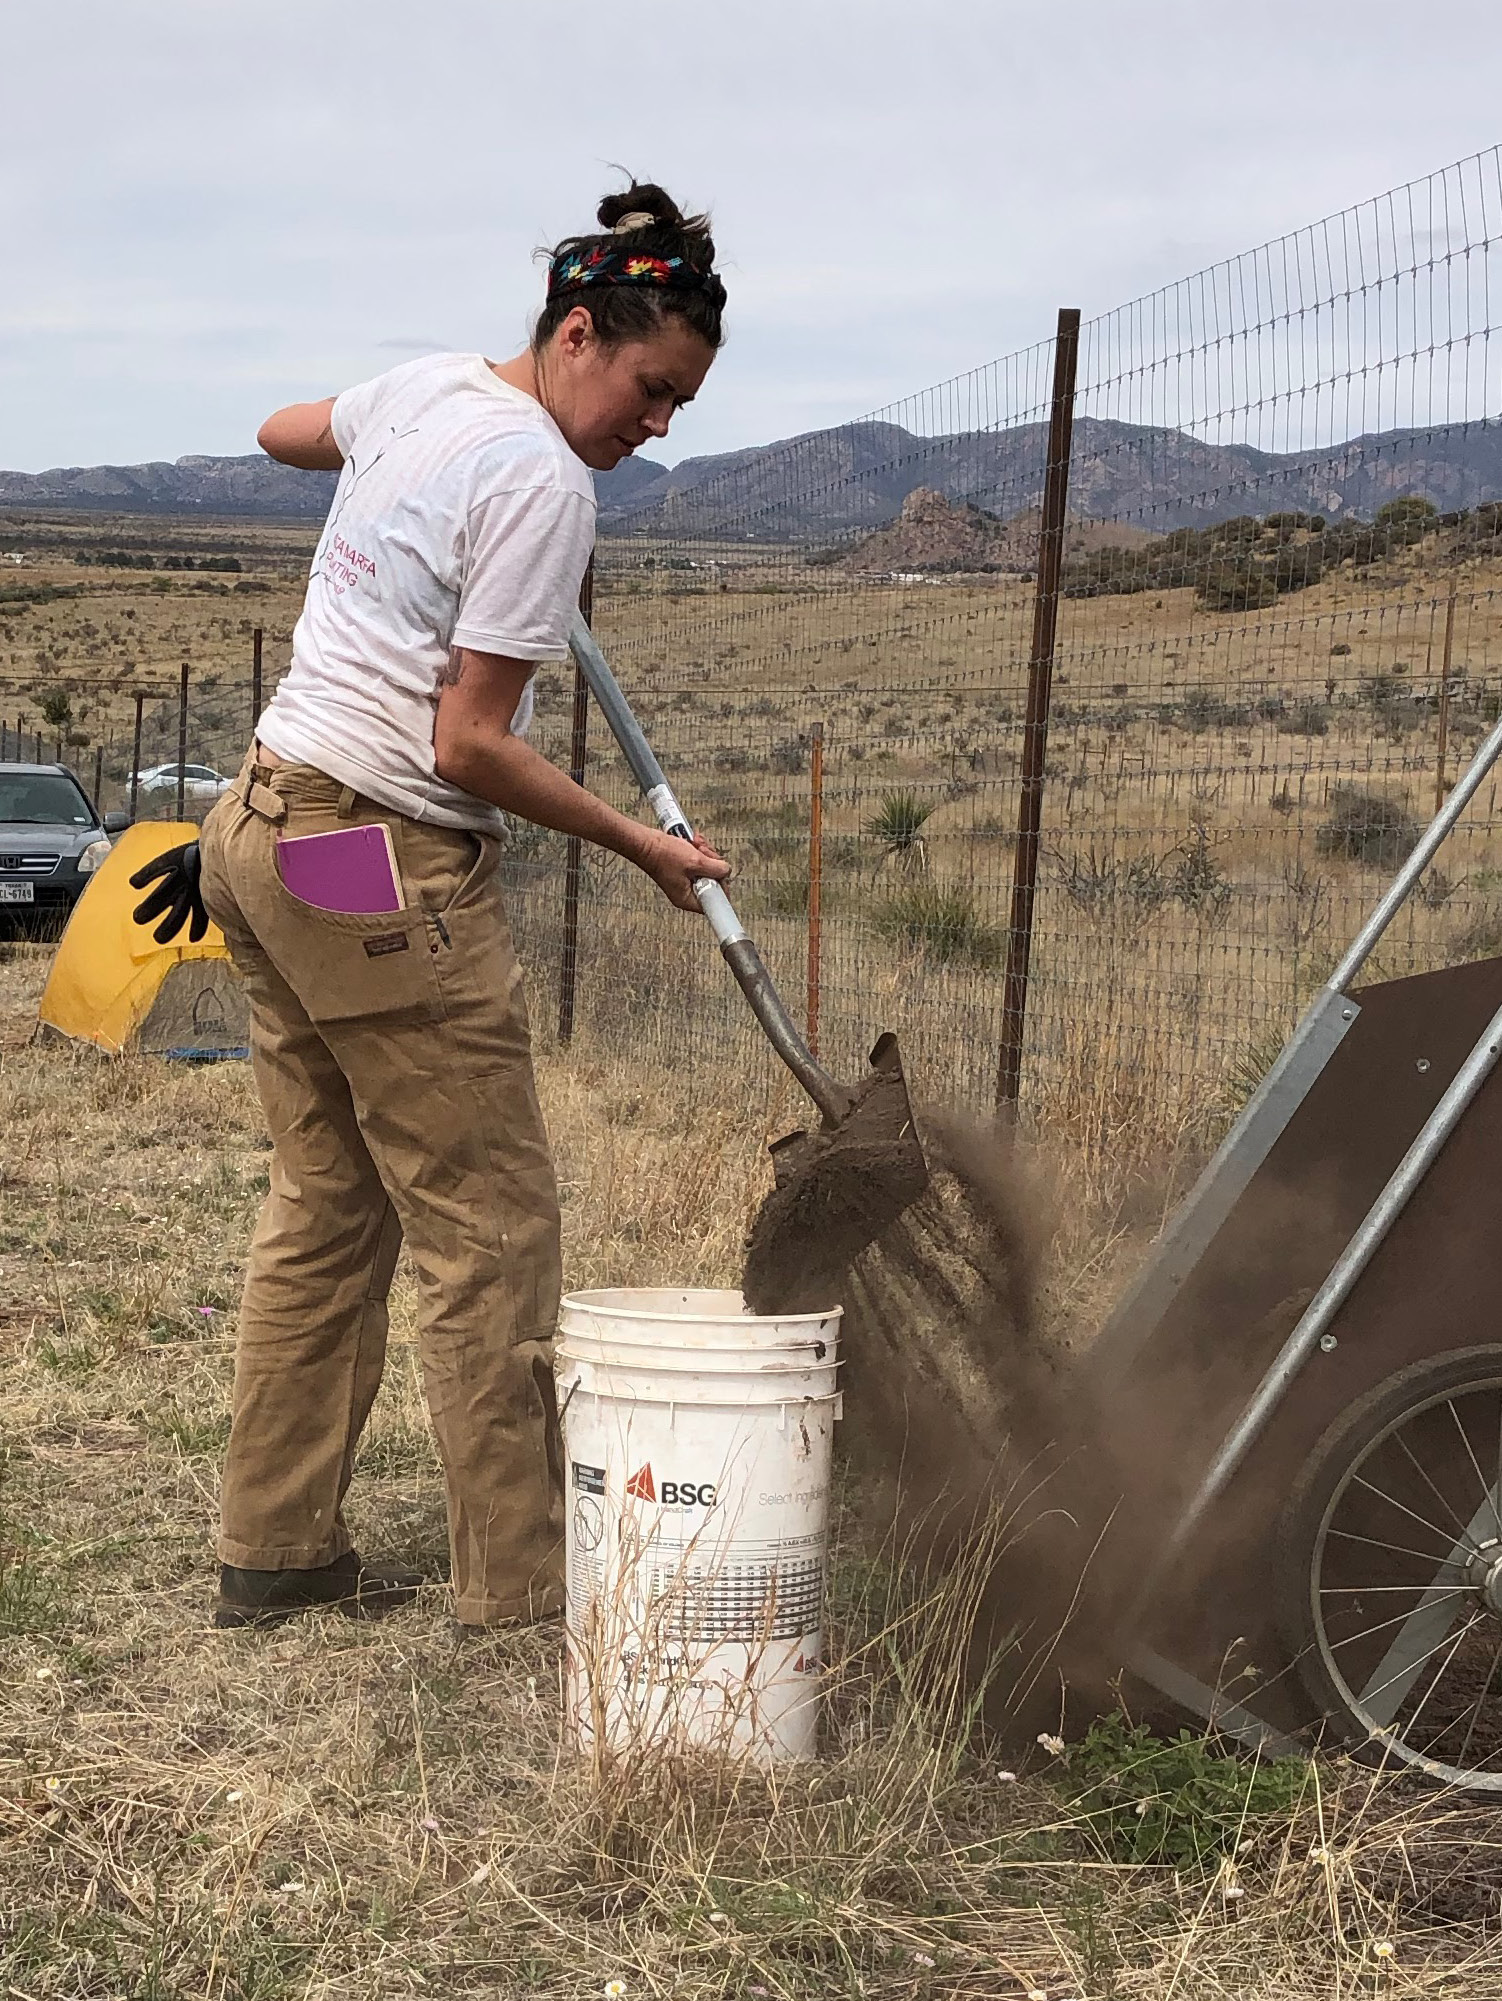 Katie filling up the dirt bucket to bring dirt to the rocky area at the top of the hill.